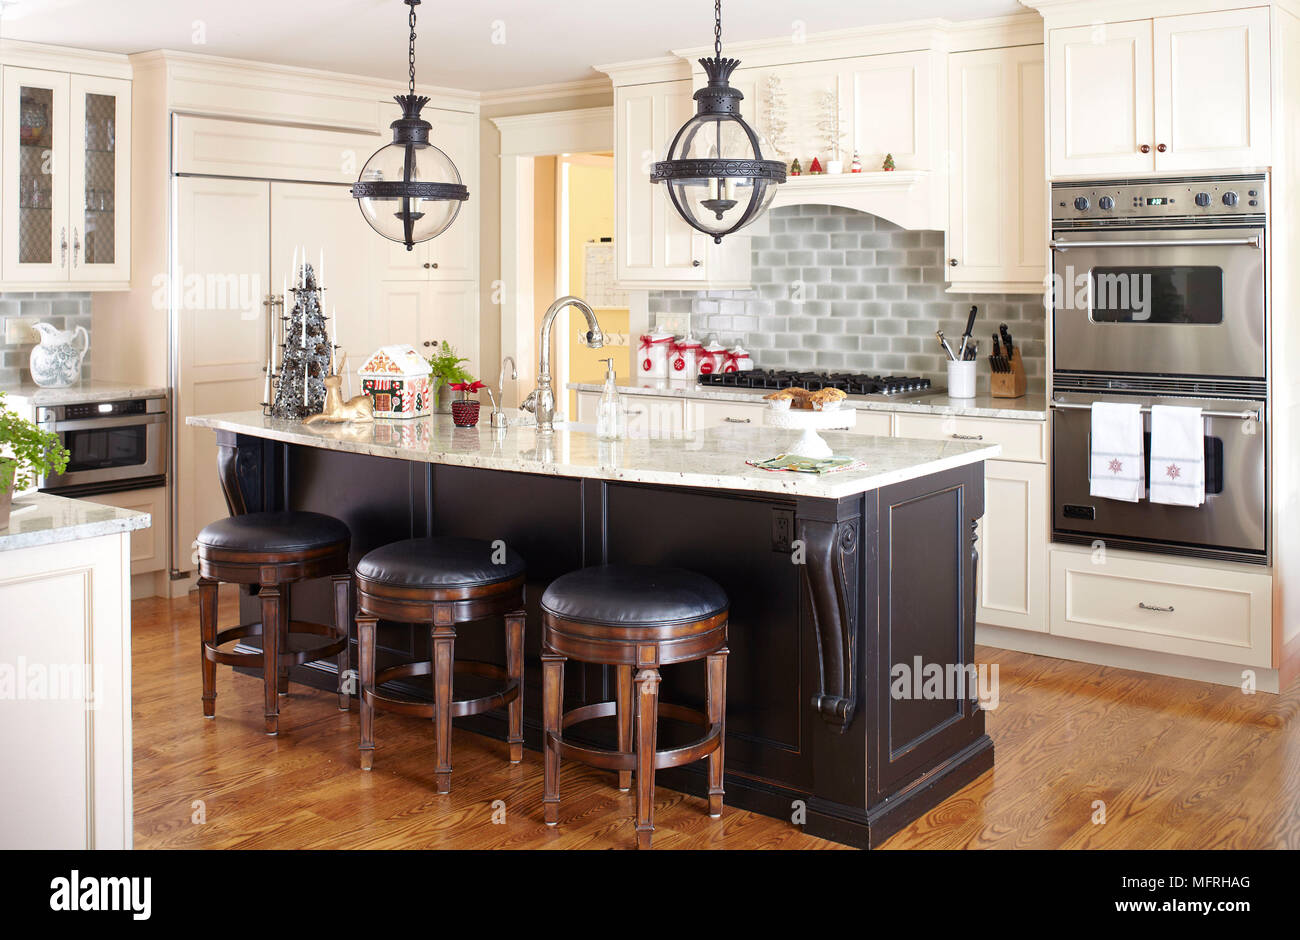 Bar Stools At Kitchen Island Breakfast Bar In Traditional Style Kitchen Fairfield New Jersey Usa Stock Photo Alamy